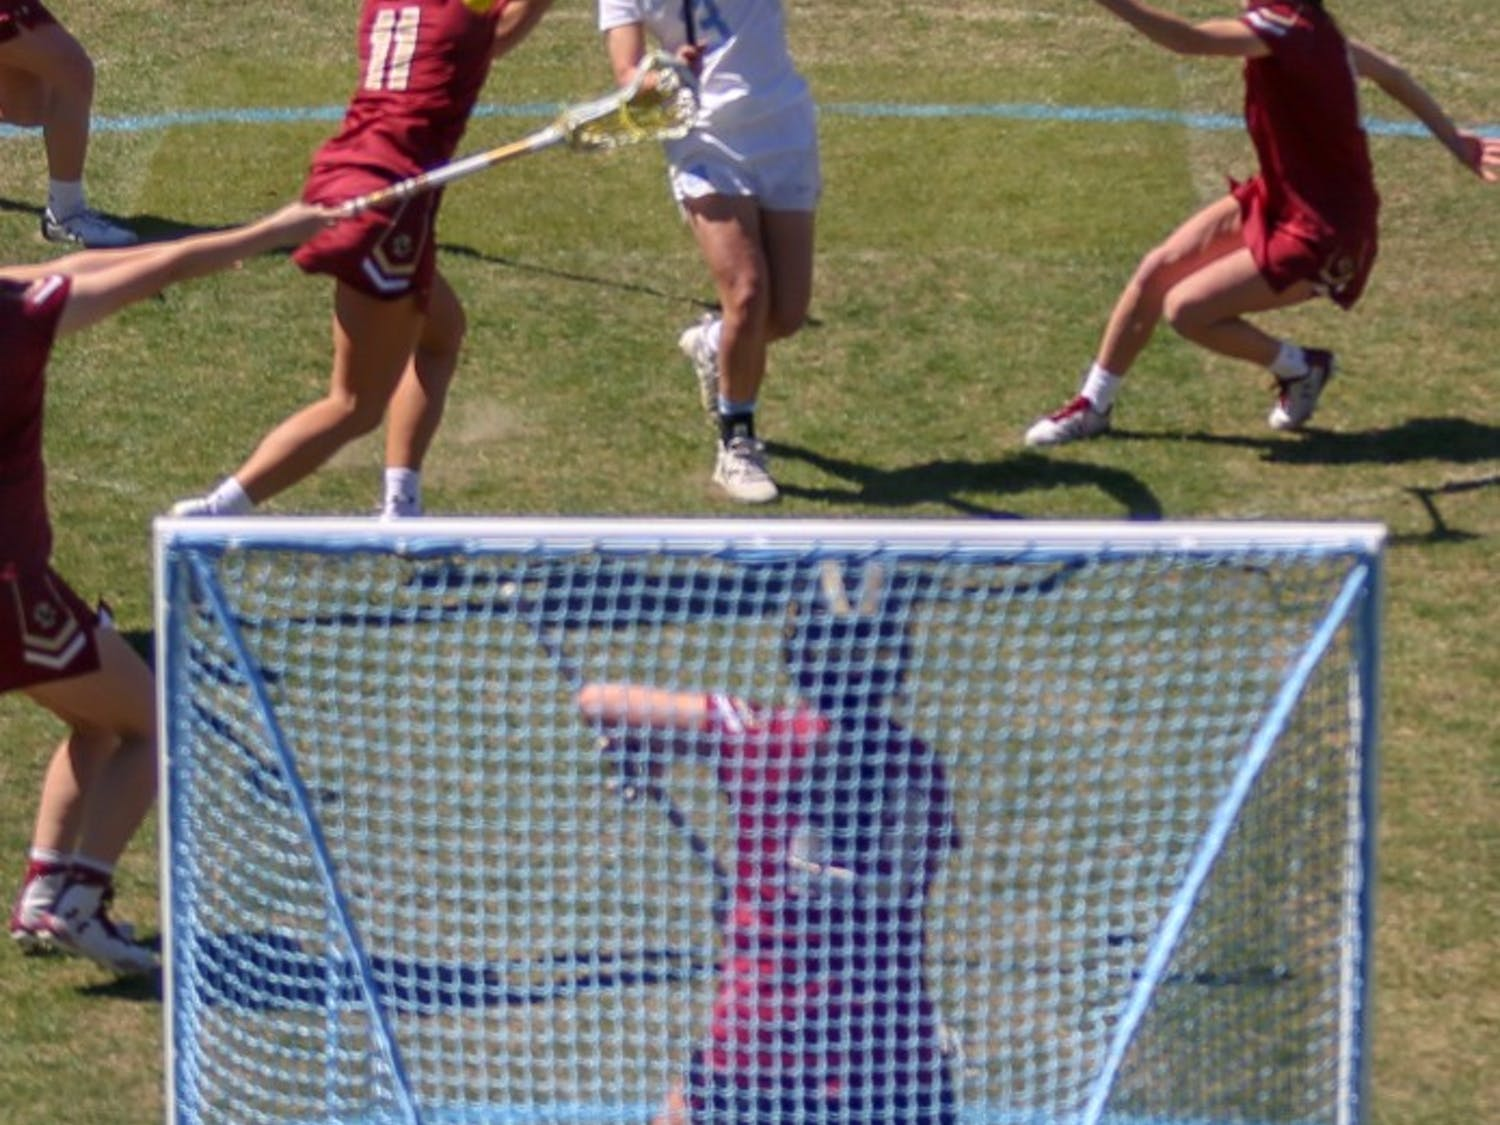 Sophomore attacker Jamie Ortega (3) makes a shot on goal against Boston College at the UNC Lacrosse Stadium on Saturday, March 23, 2019. Boston College defeated UNC 14-8.